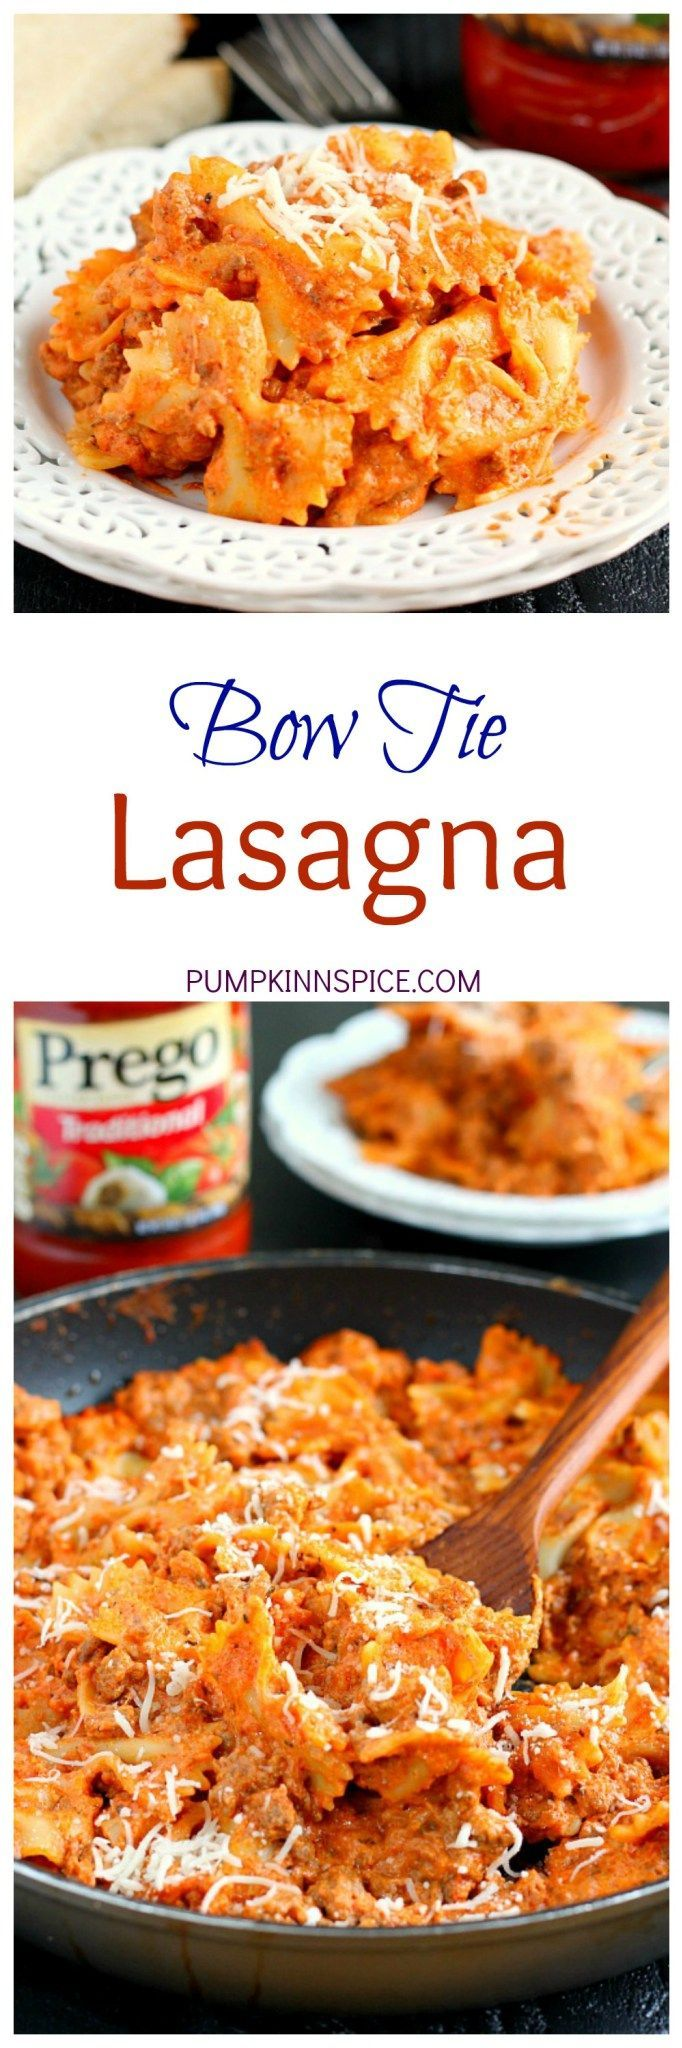 This Creamy Bowtie Lasagna is an easy recipe that the whole family will enjoy. Filled with hearty ingredients and made in a skillet, this pasta contains all of the flavors of classic lasagna, but without all of the prep work!